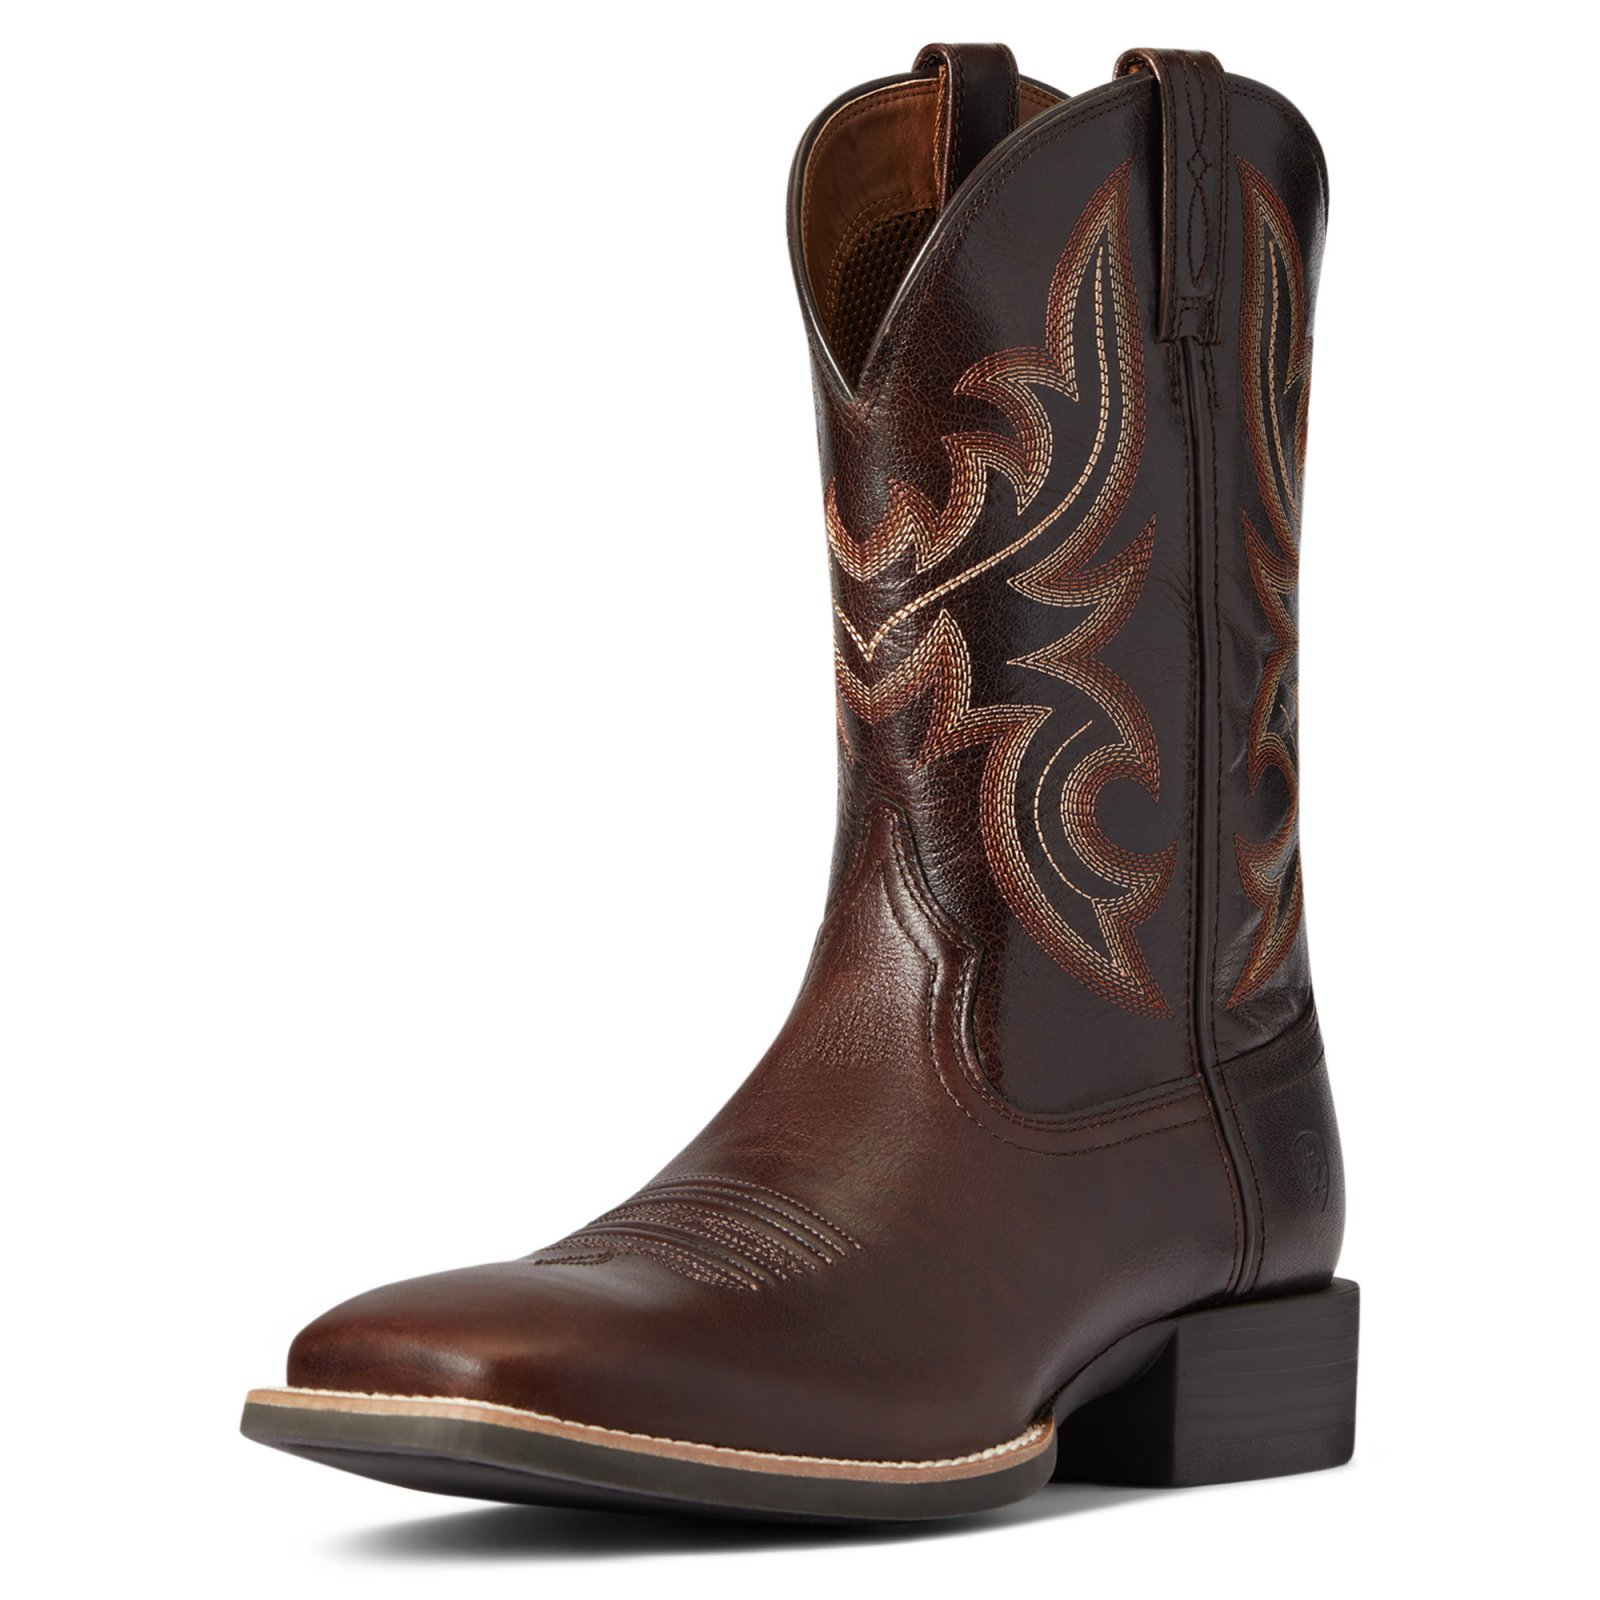 Sport Cow Country Western Boot from Ariat